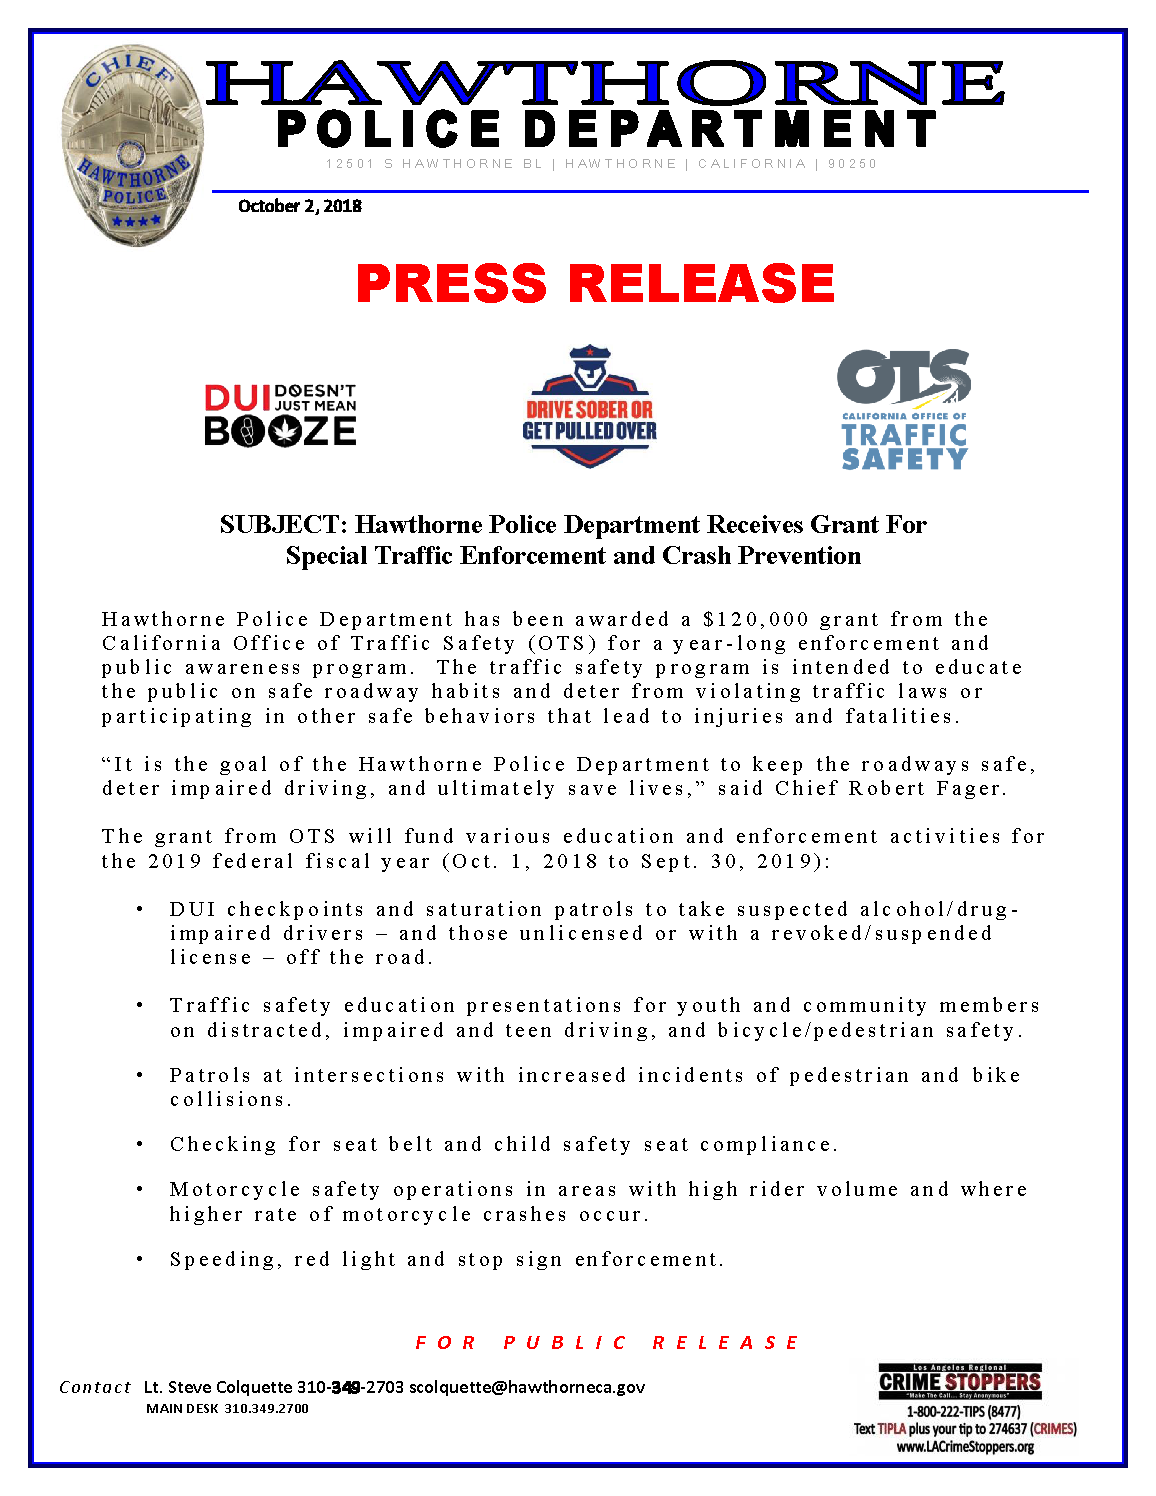 Hawthorne Police Department Receives Grant For Special